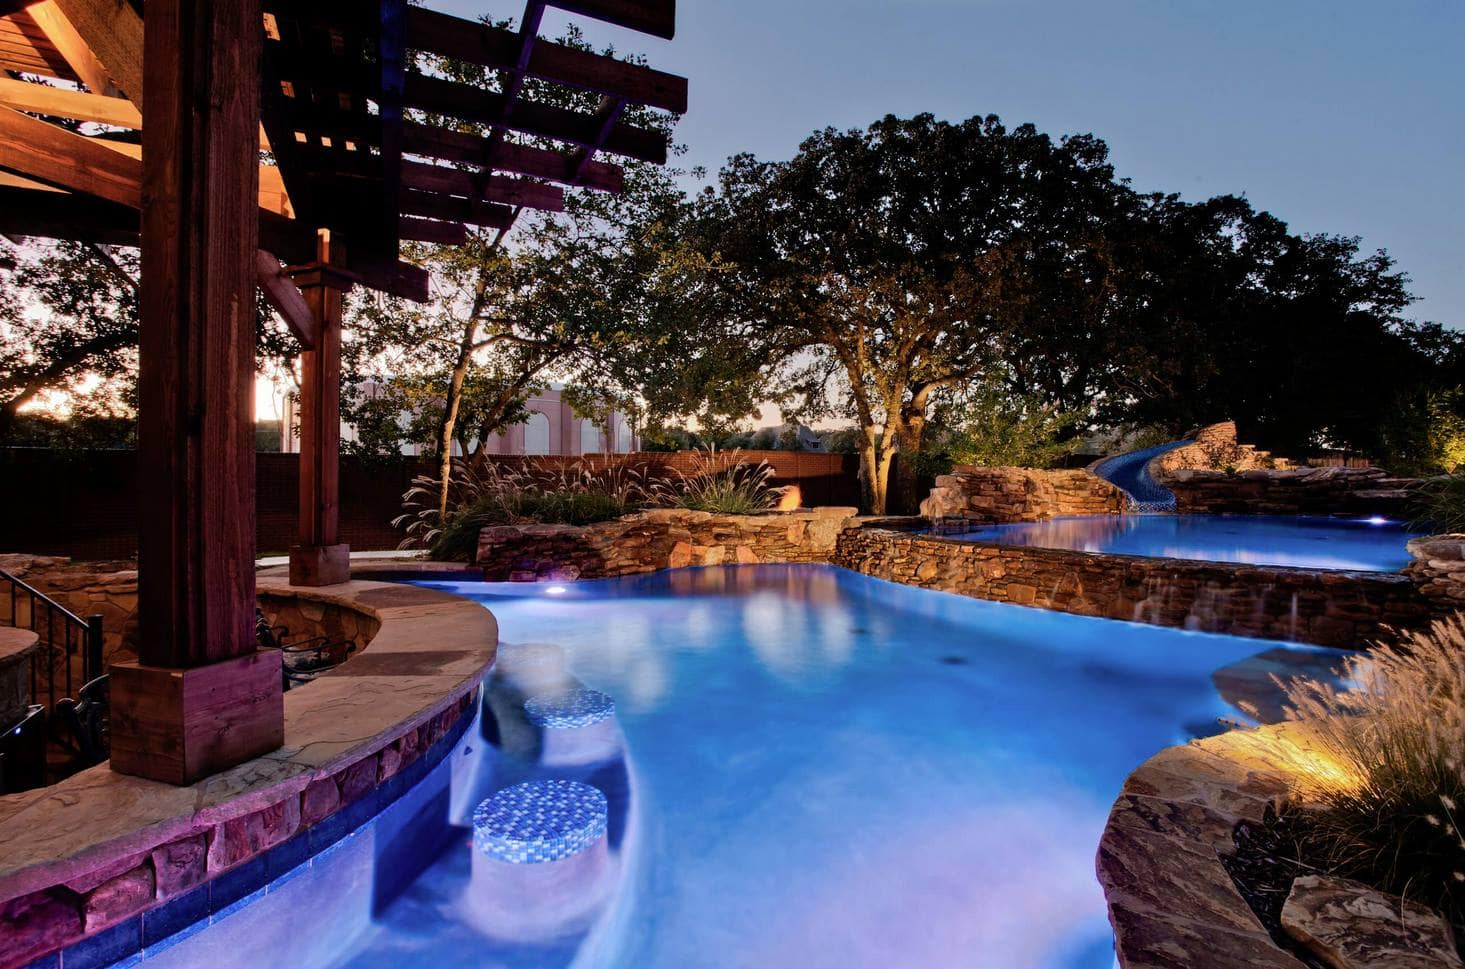 Home Improvement Tips - Beautiful home with upgraded pool in the backyard